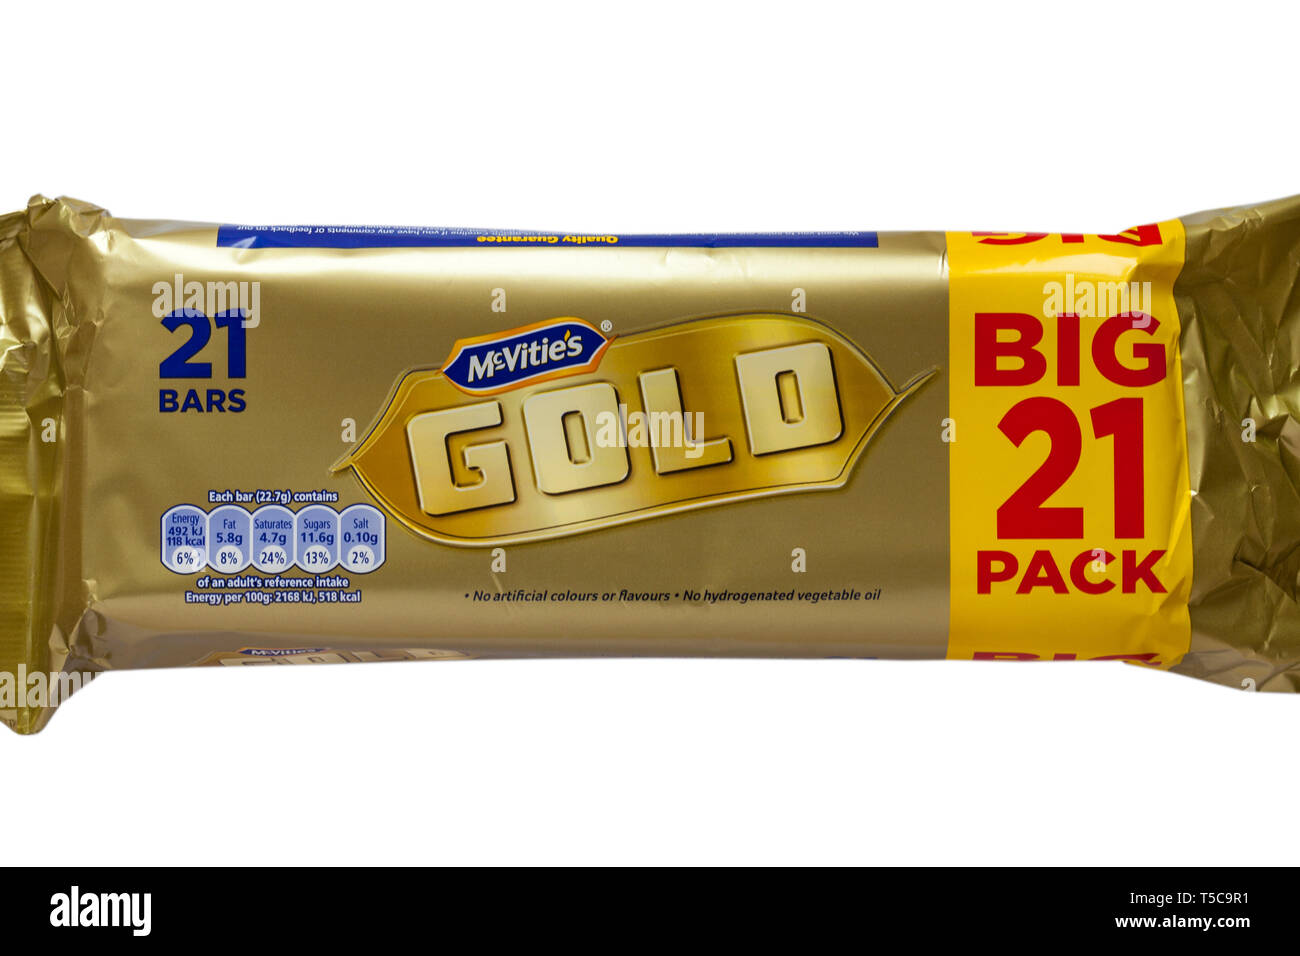 Packet Of Mcvities Gold Biscuits Biscuit Bars Big 21 Pack